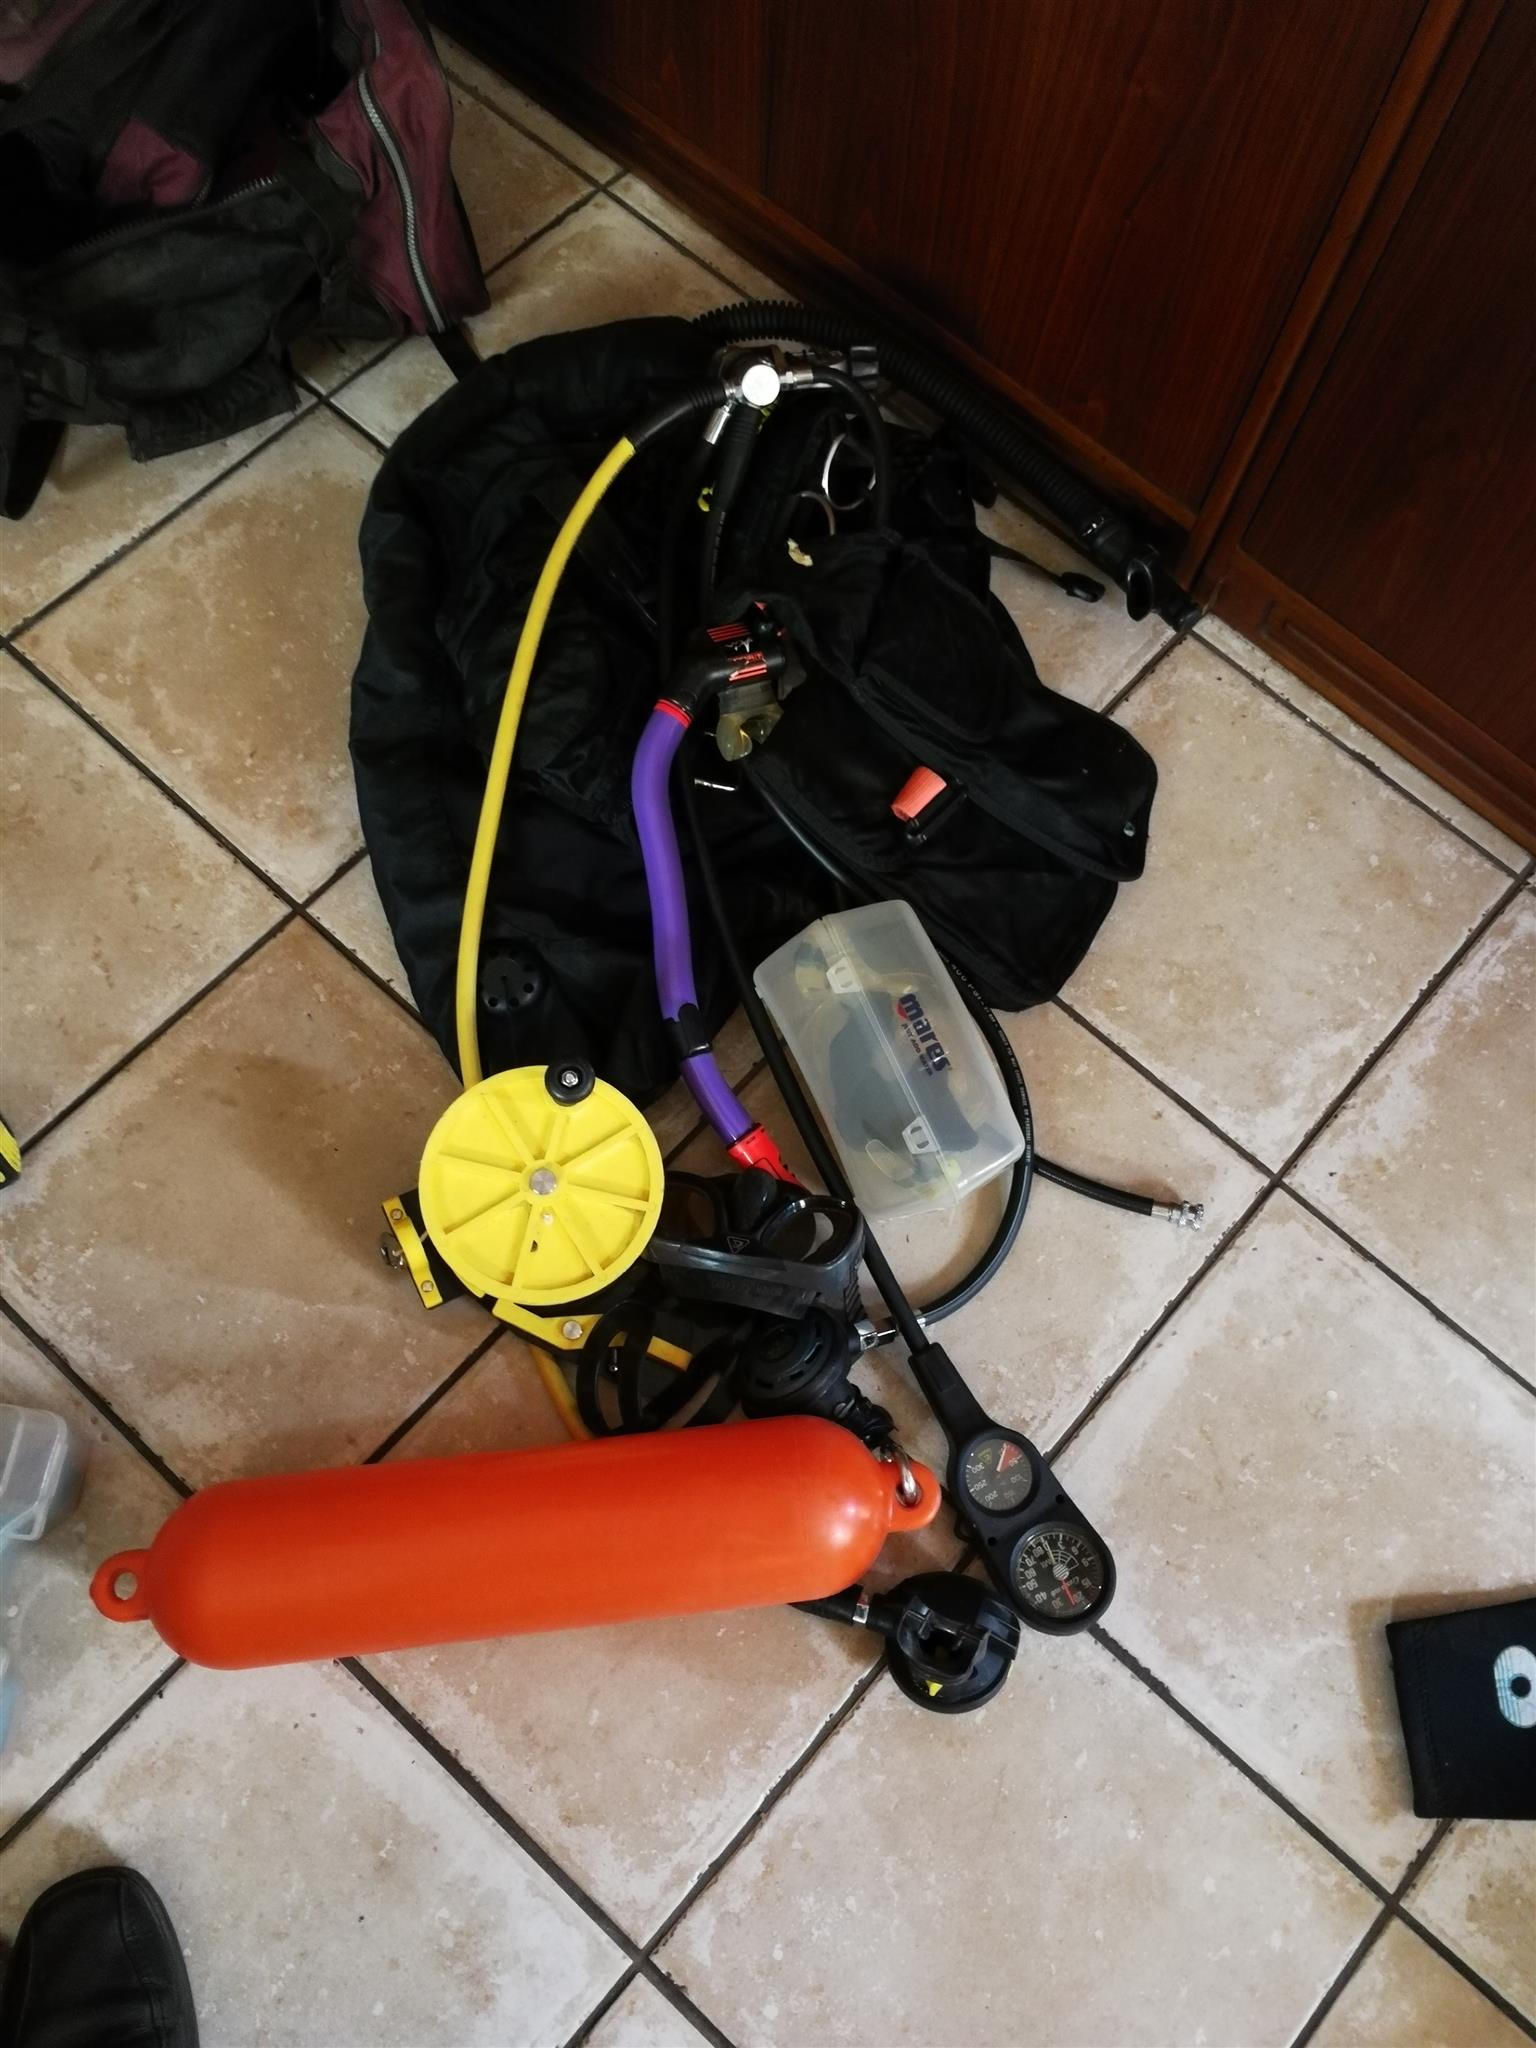 Scuba diving gear for sale